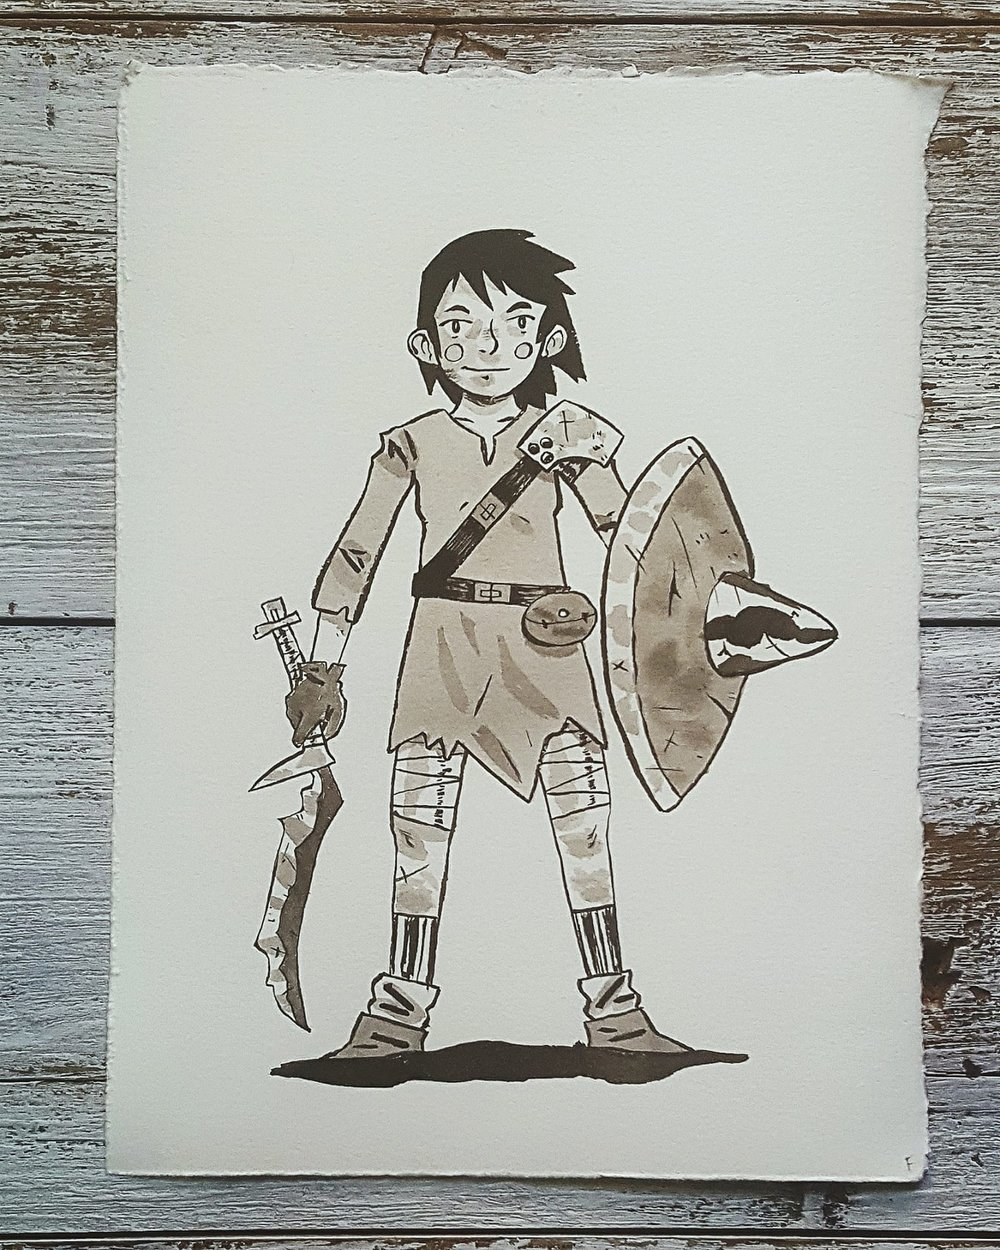 A Knight a Day No. 1, Novice Adventurer - Mar worked at the docks selling fresh minnows to help her family make ends meet, but her dream was to be like the rugged pirates she saw sailing in and out everyday. At 13, with bright eyes and a bit of shabby gear she saved up for, she set out on her own adventure.